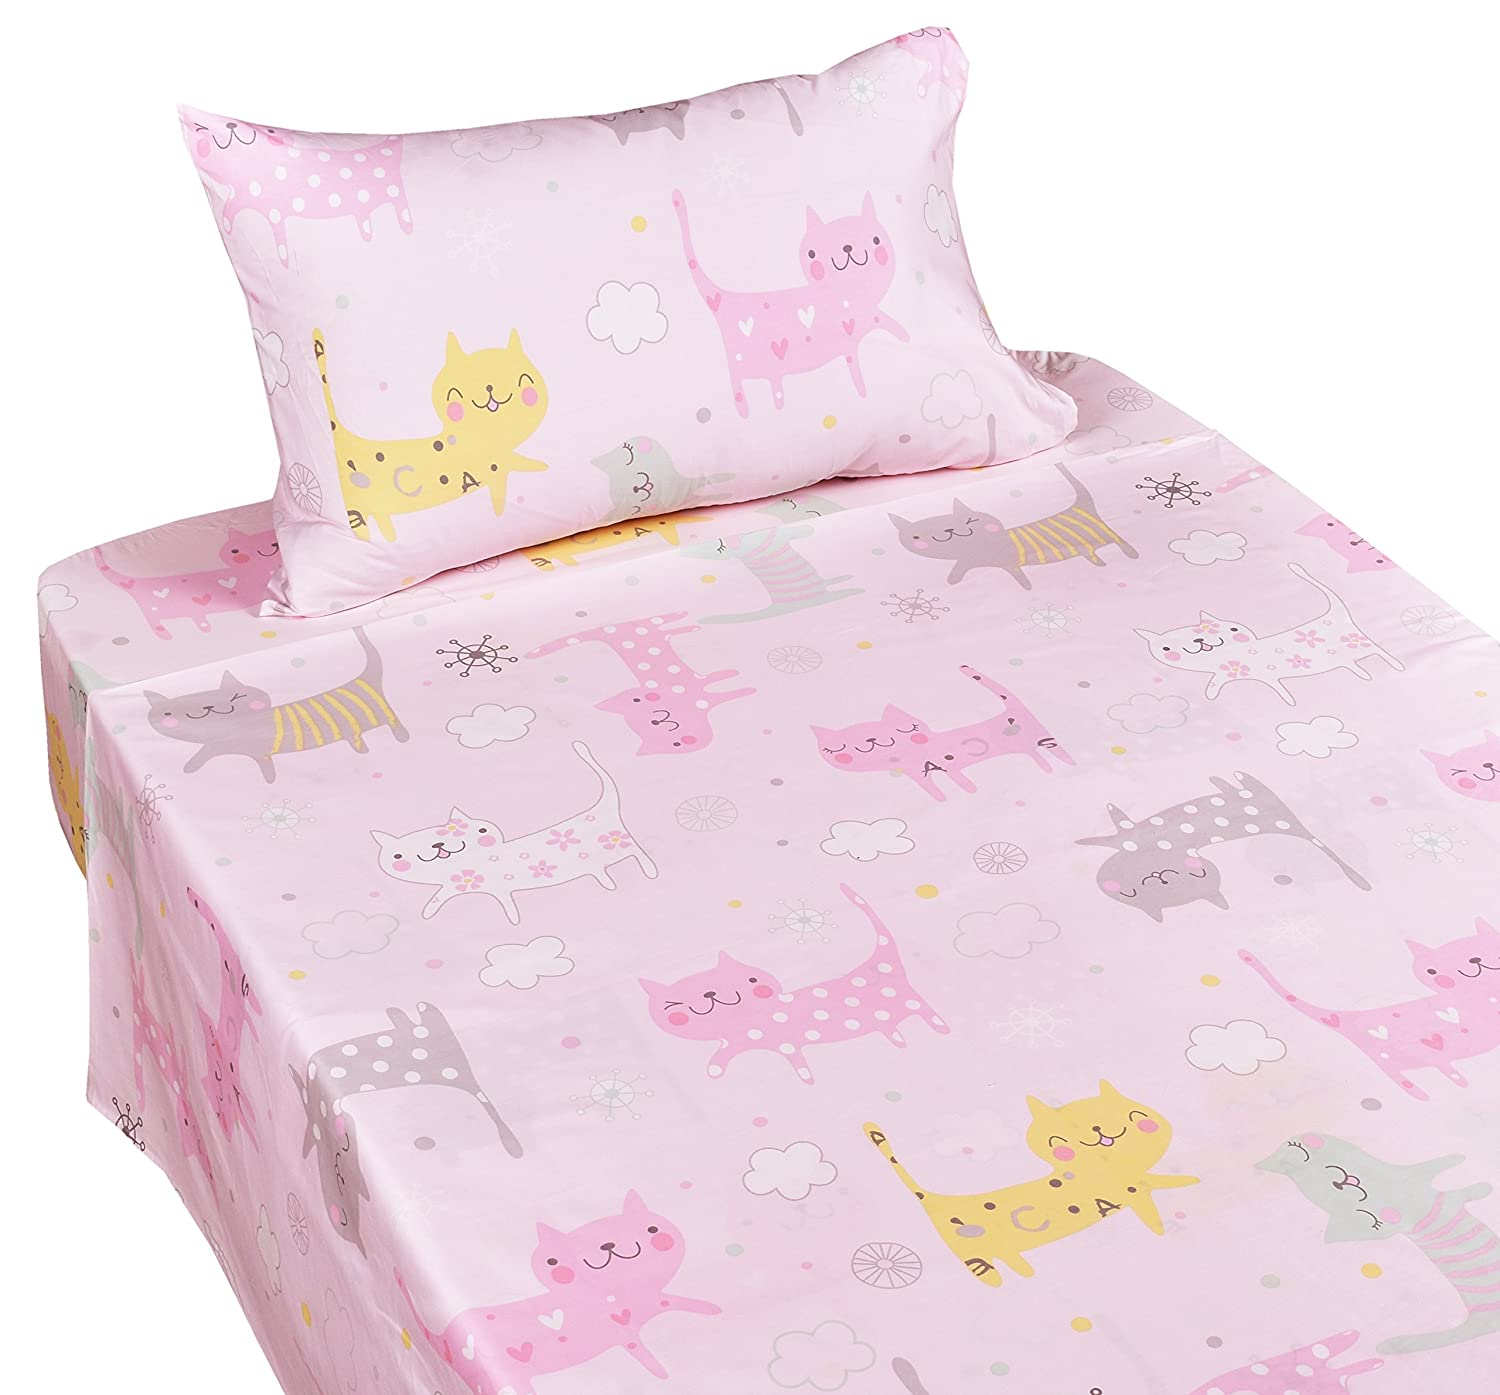 J-pinno Kids Boy Girl Cute Kitty Cats Mouse Twin Sheet Set for Kids Boy Girl Children,100% Cotton, Flat Sheet + Fitted Sheet + Pillowcase Bedding Set (cat)